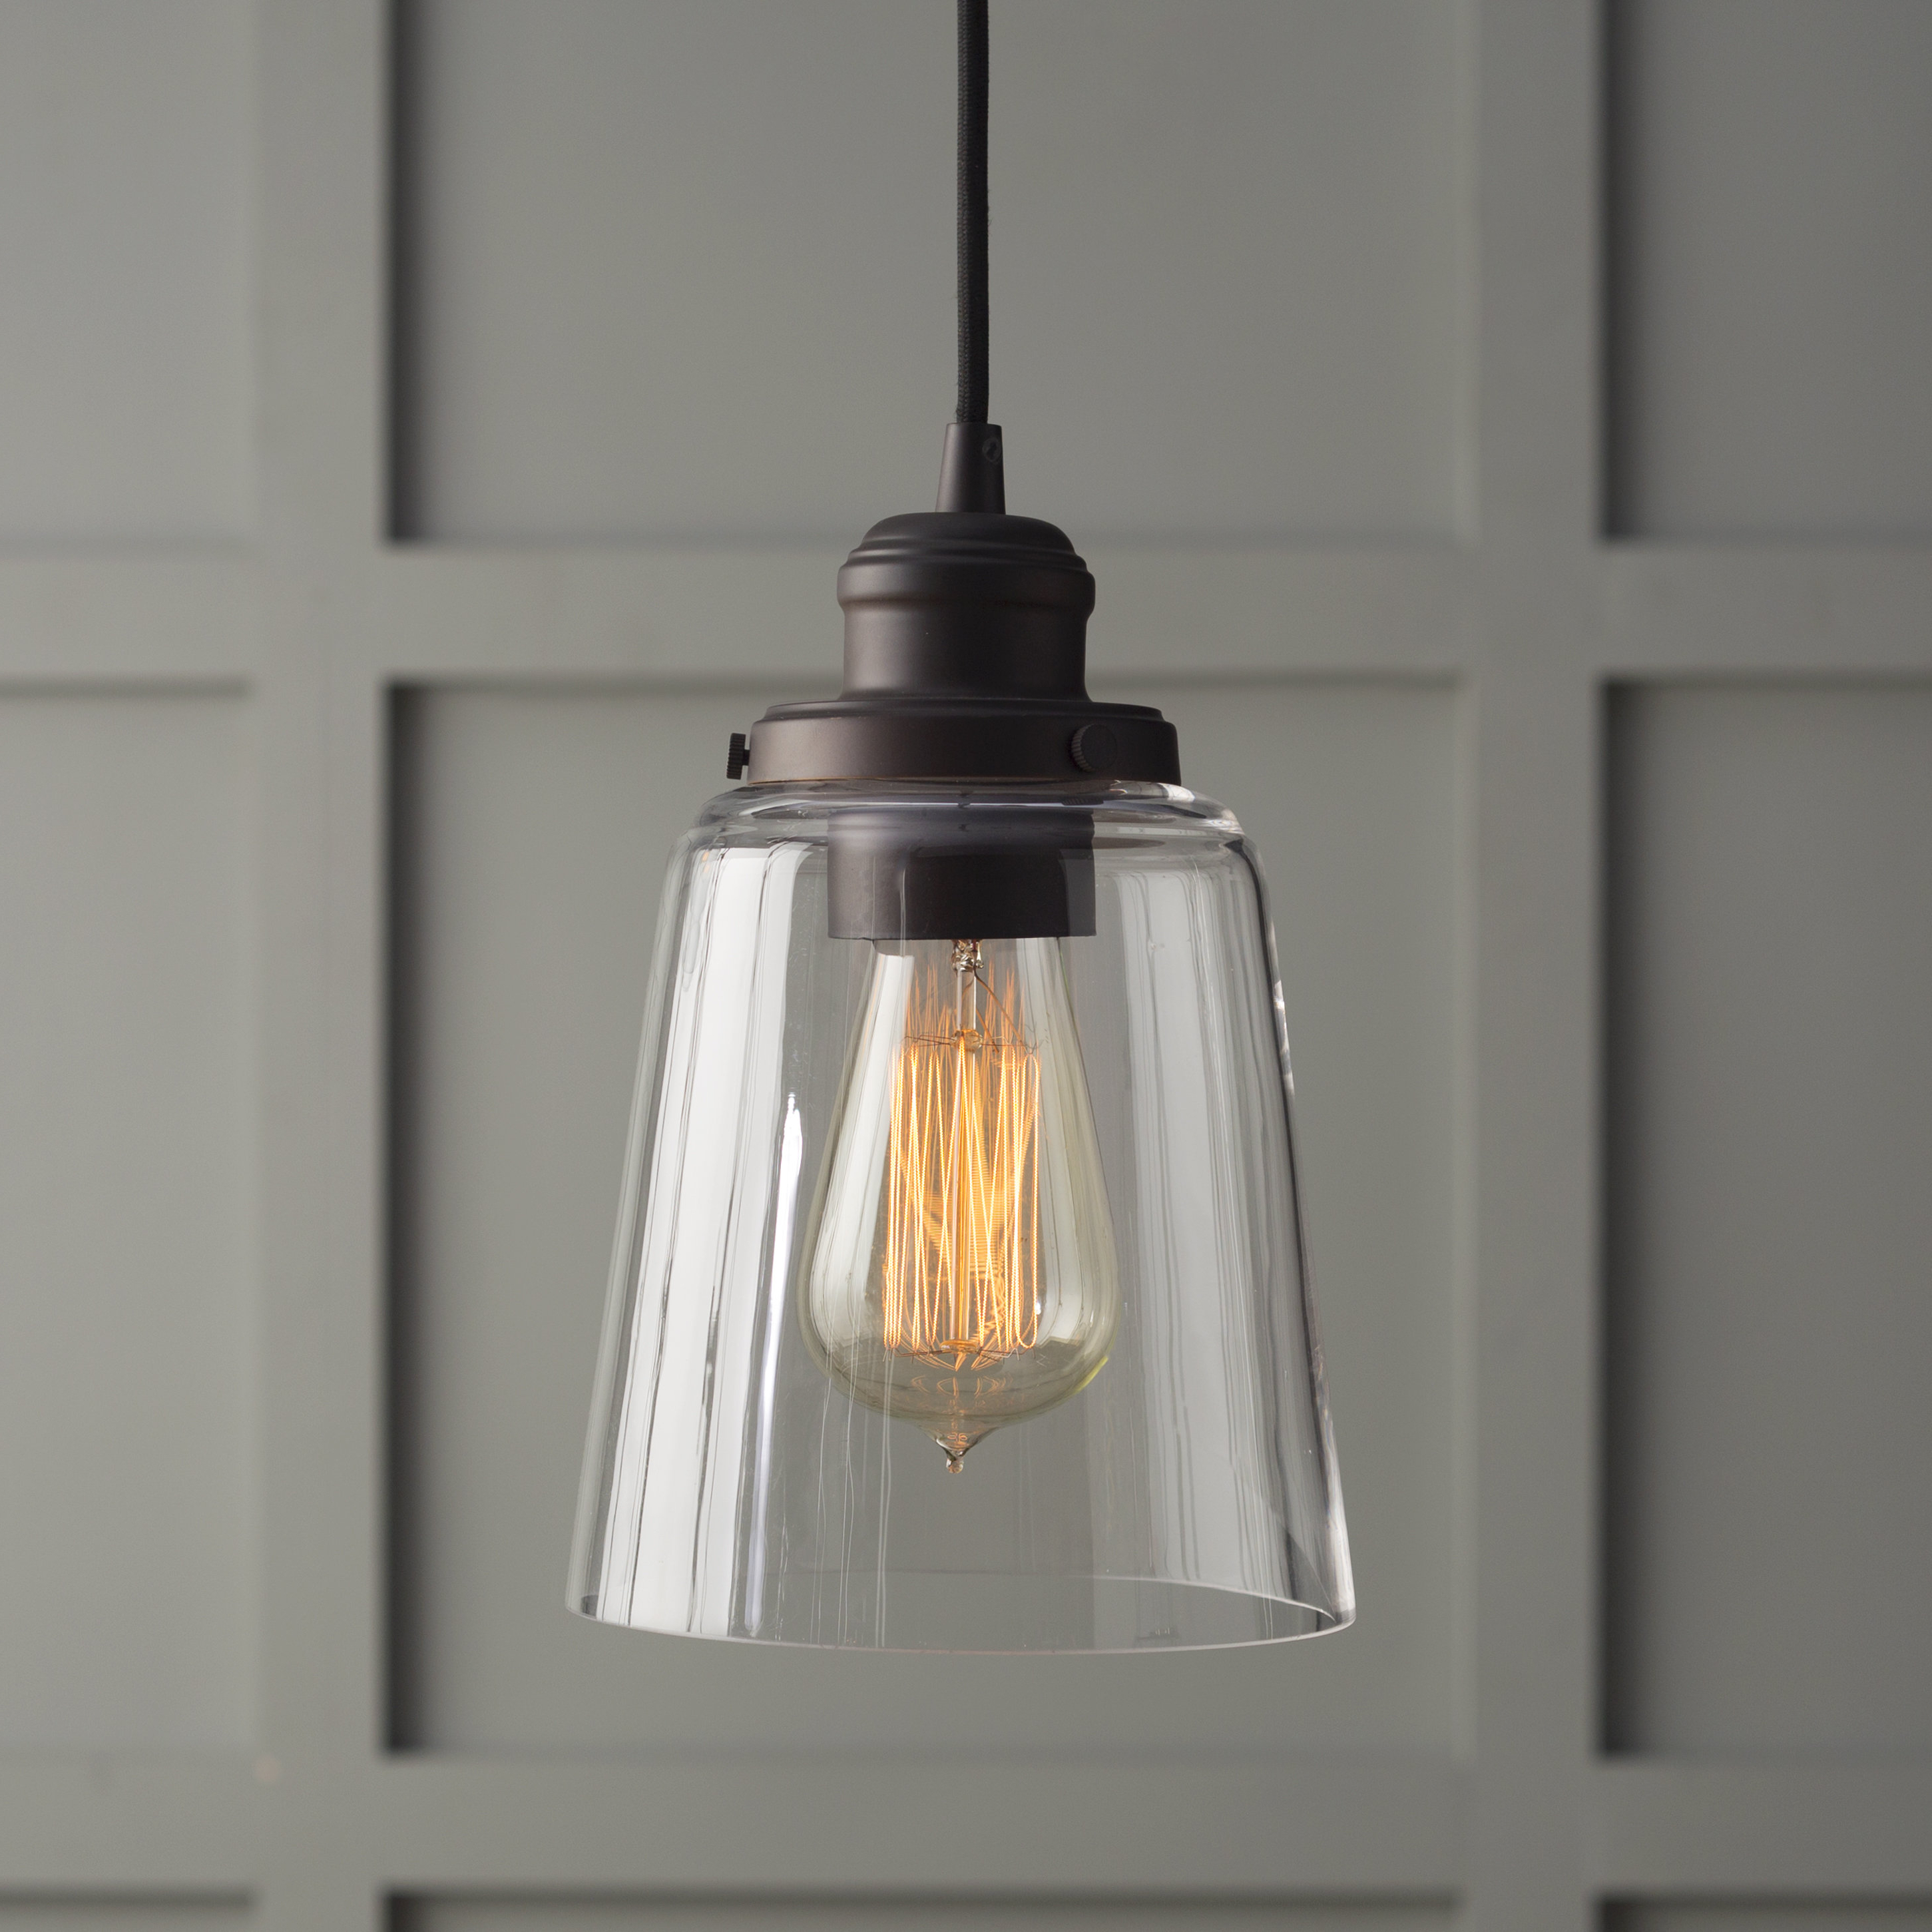 Moyer 1 Light Single Cylinder Pendants Throughout Most Current 1 Light Single Bell Pendant (View 14 of 25)